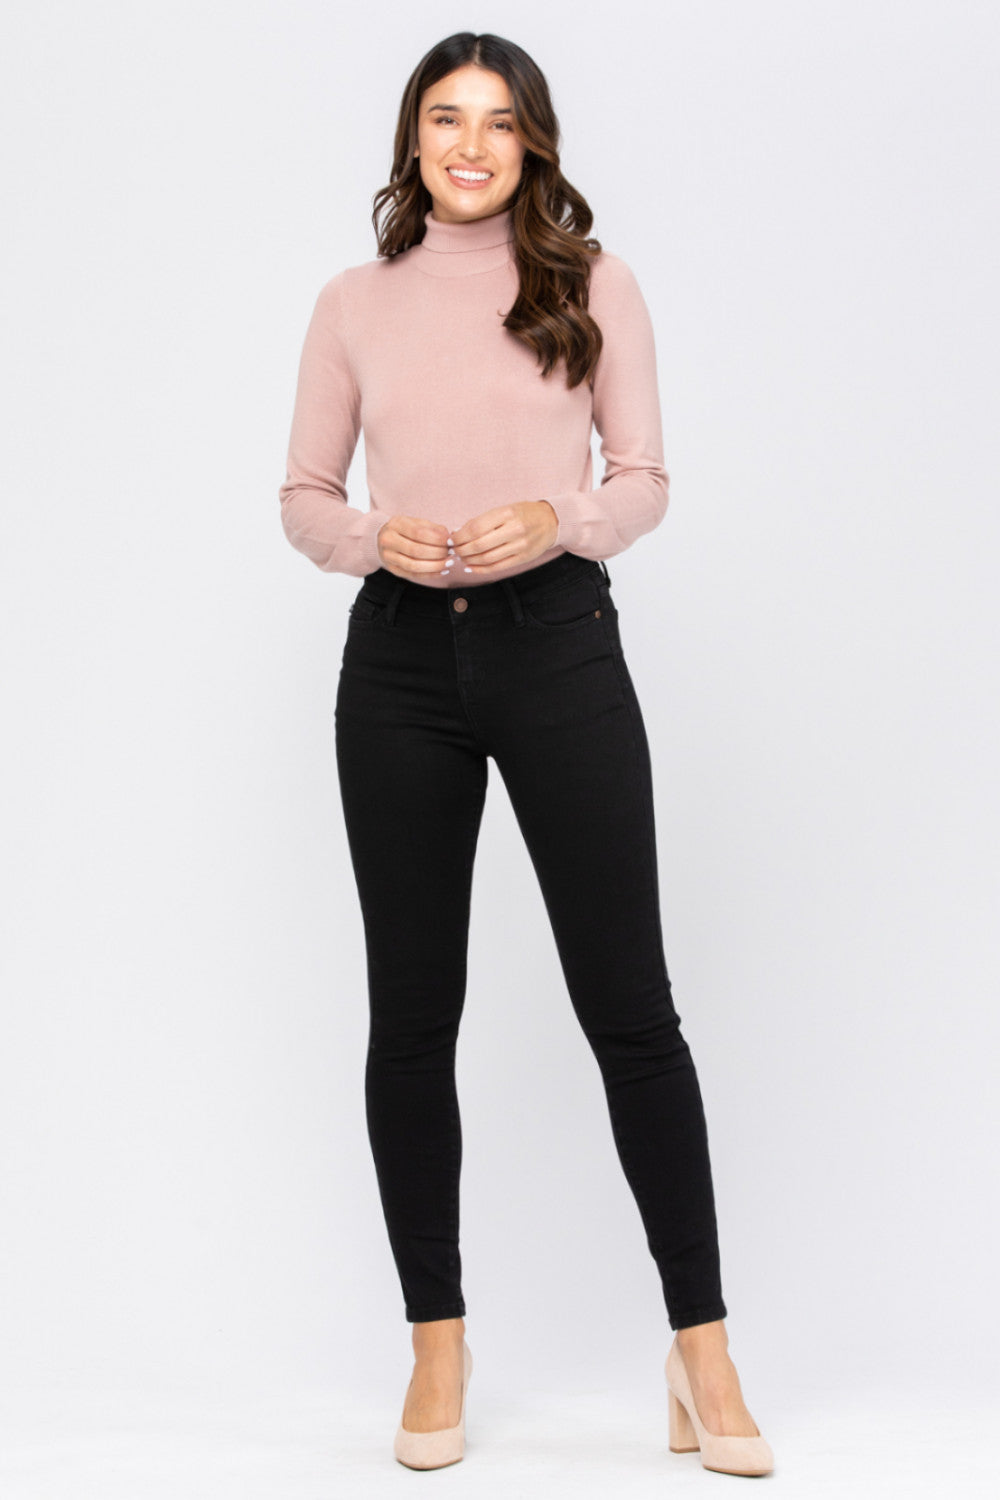 Judy Blue Skinny Black non-destructed Jean - 8883 - M C and J